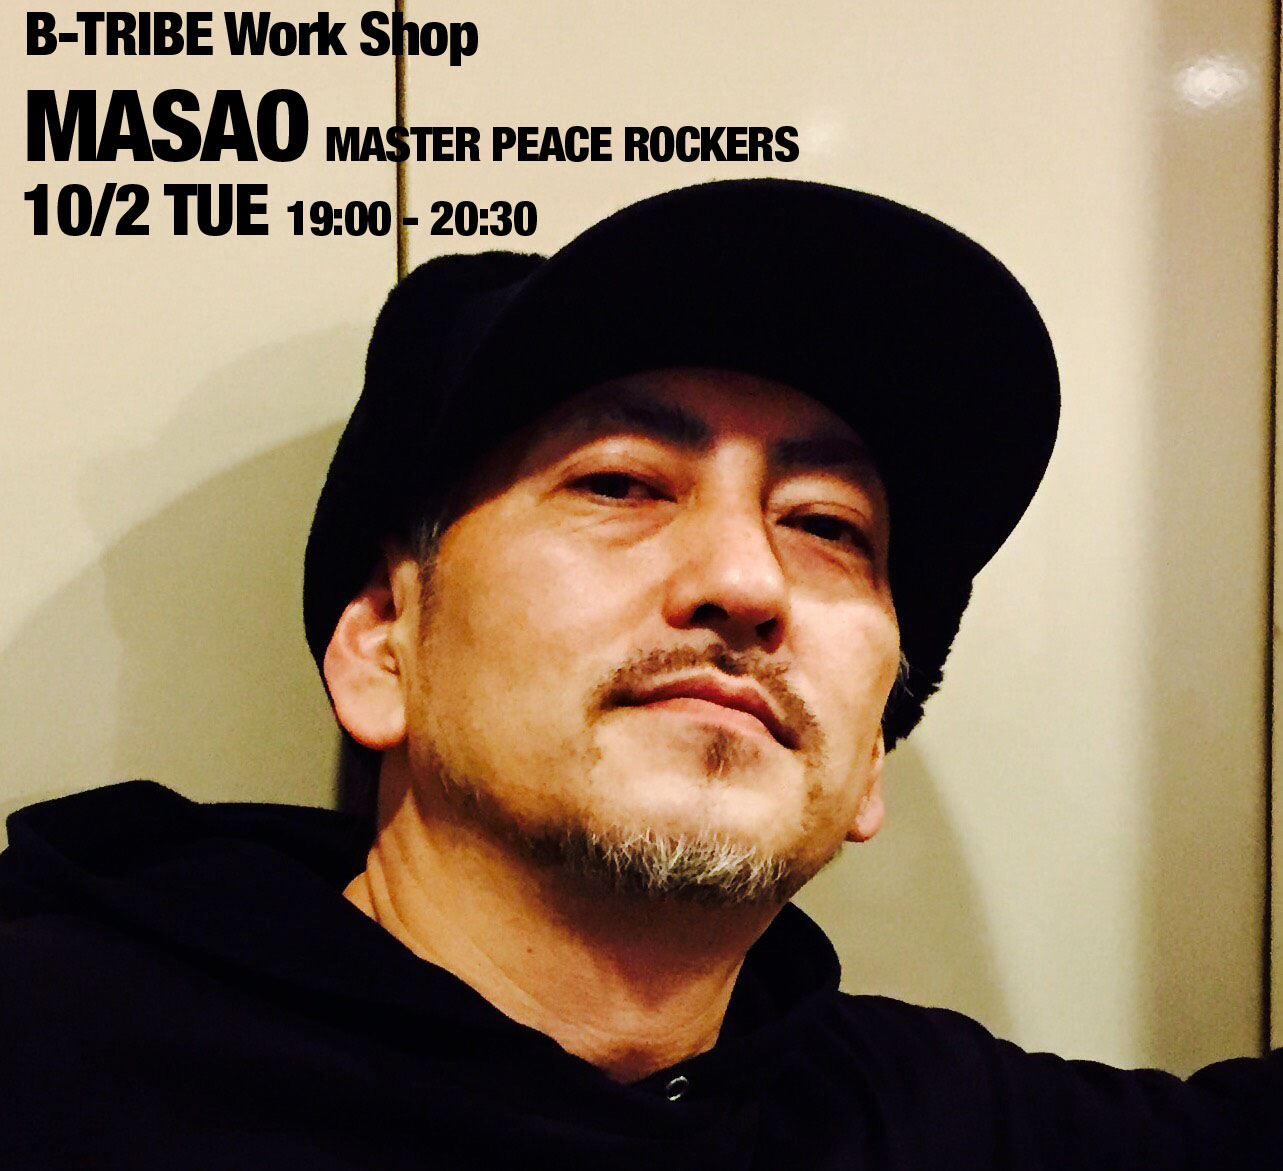 10/2 tue -MASAO- WorkShop